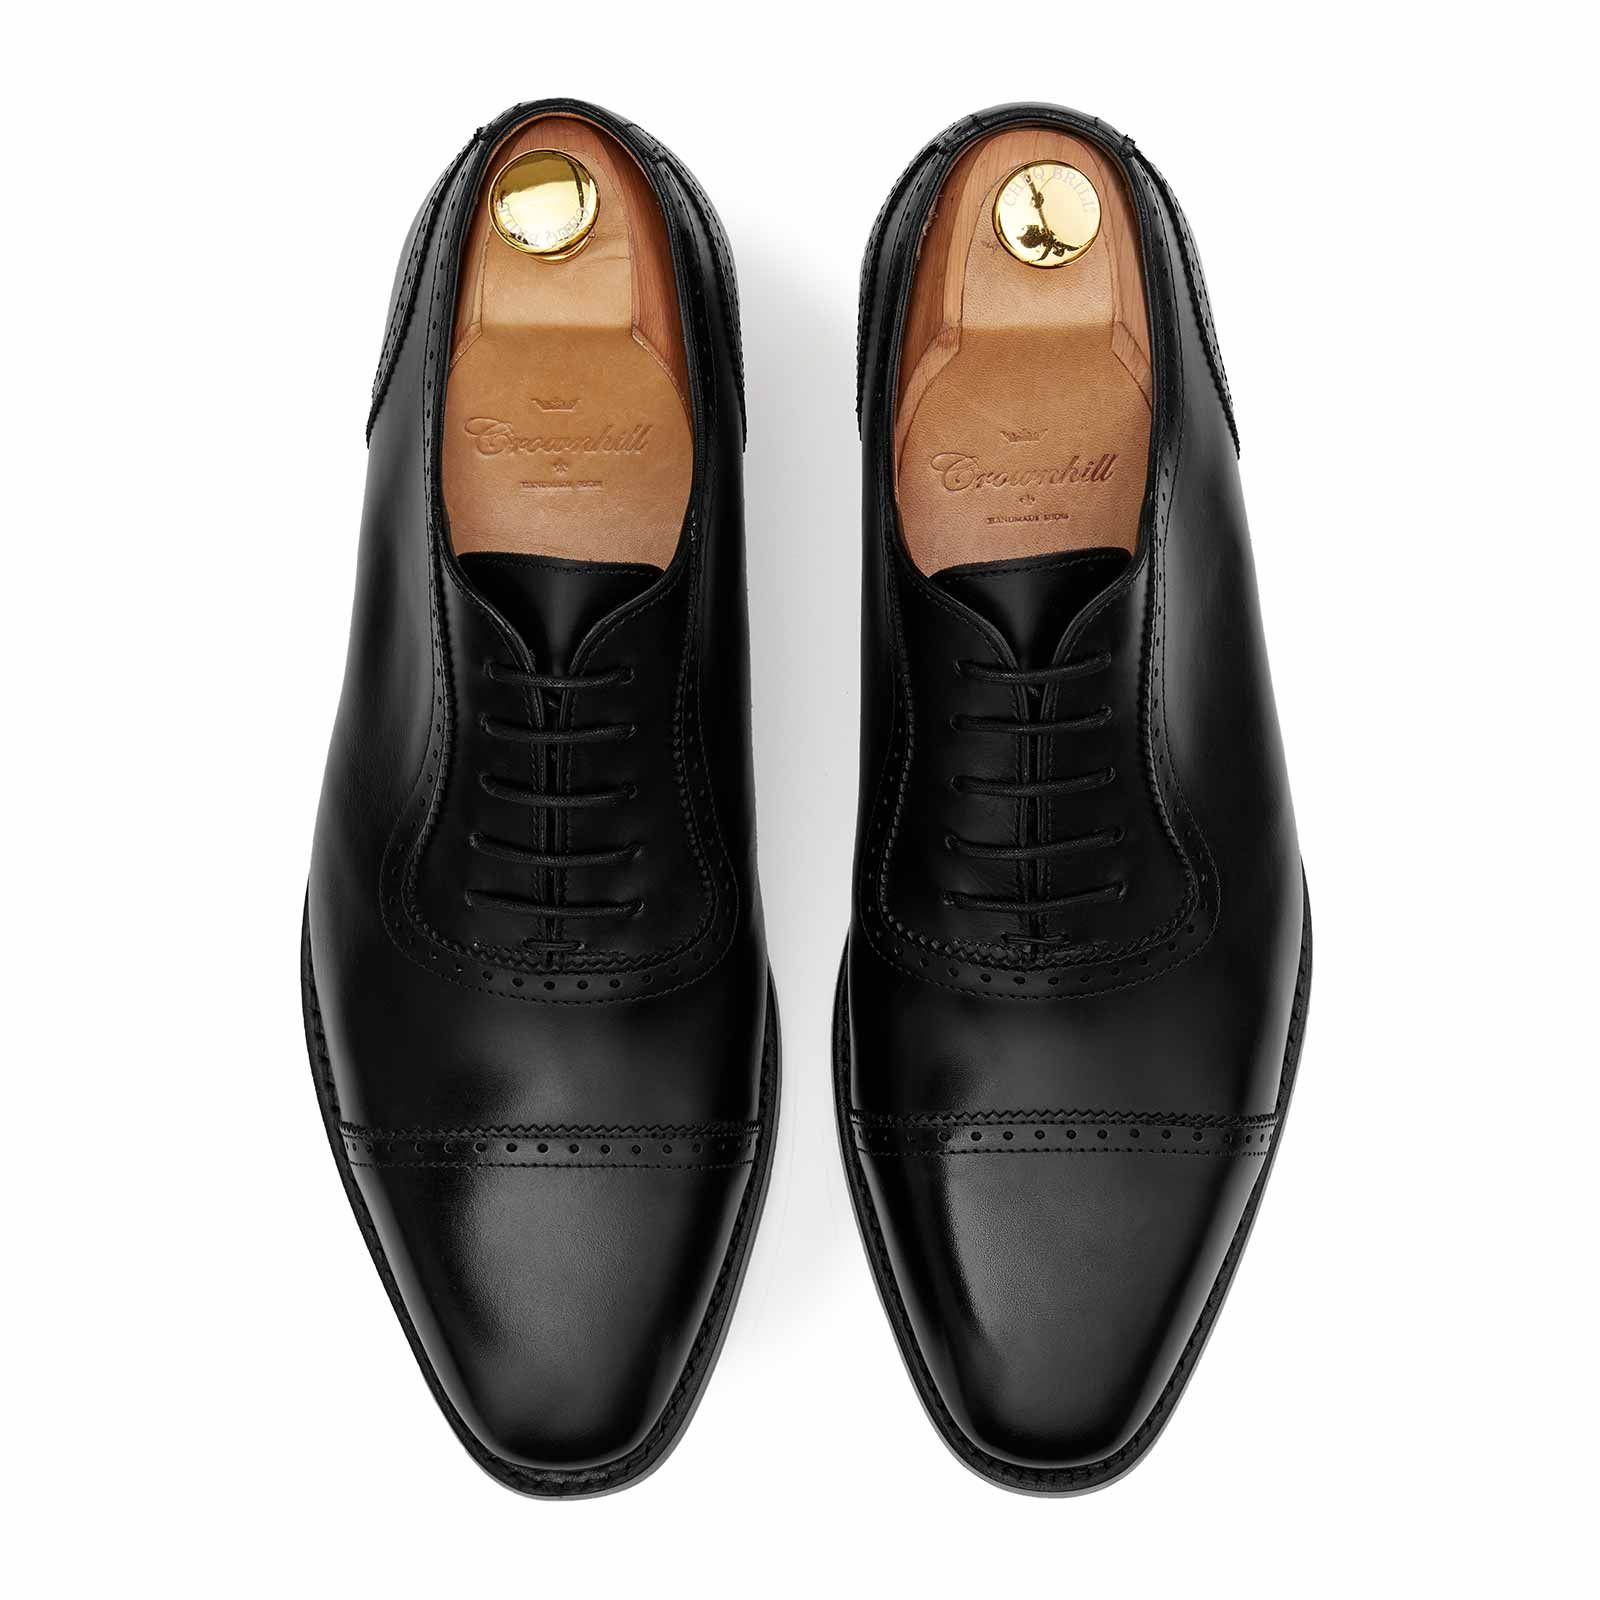 black oxford leather shoes